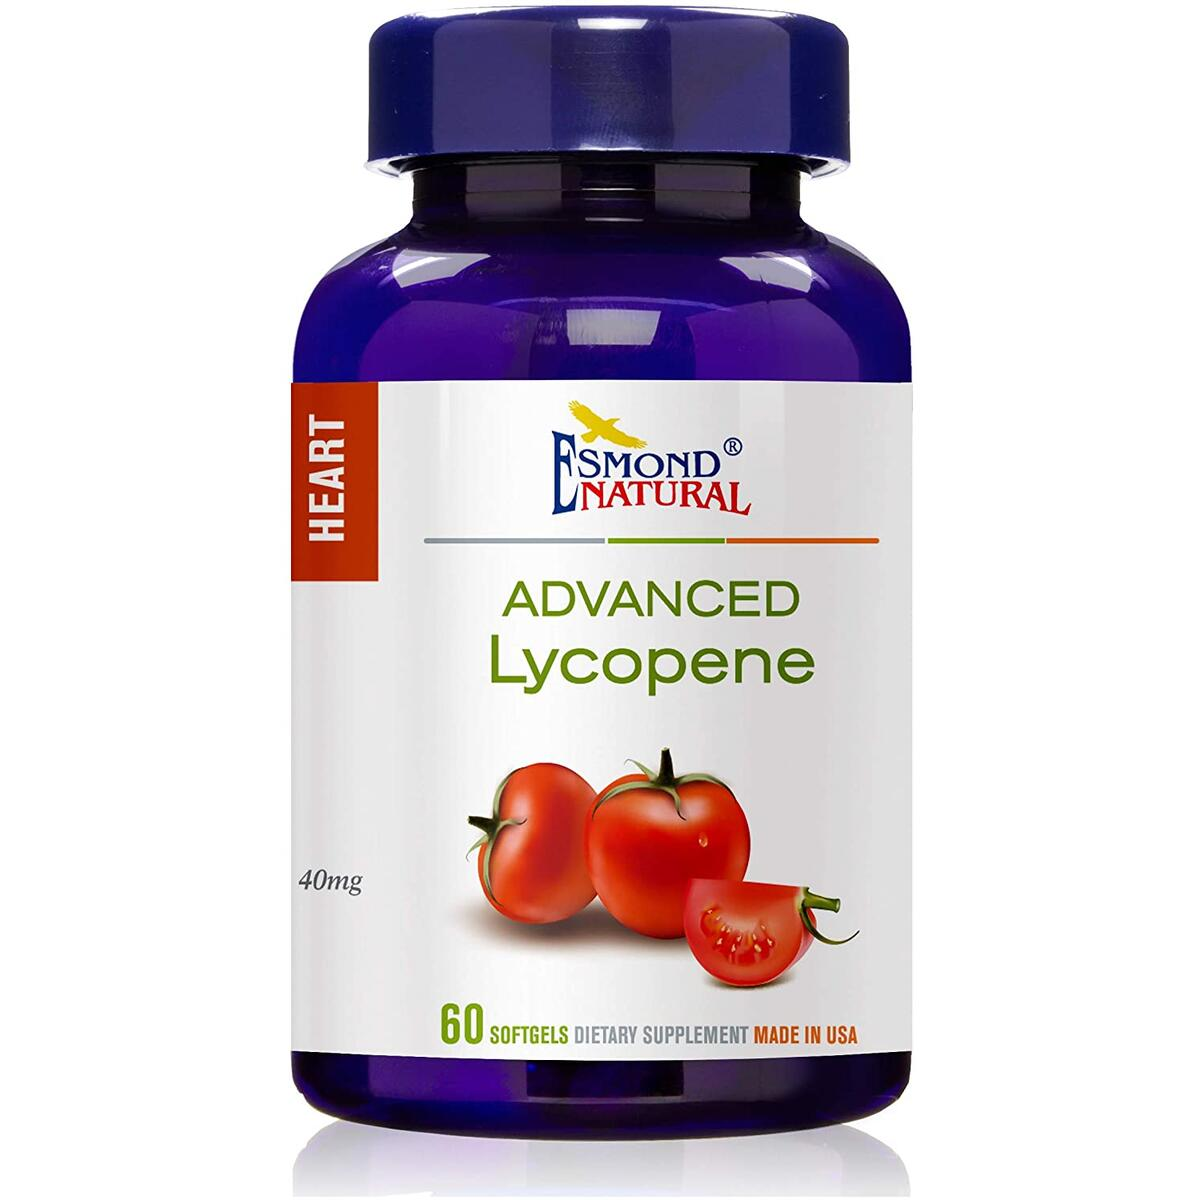 (5 Count, 25% Off) Esmond Natural: Advanced Lycopene (Supports Prostate and Hearth Health), GMP, Natural Product Assn Certified, Made in USA-40mg, 300 Softgels